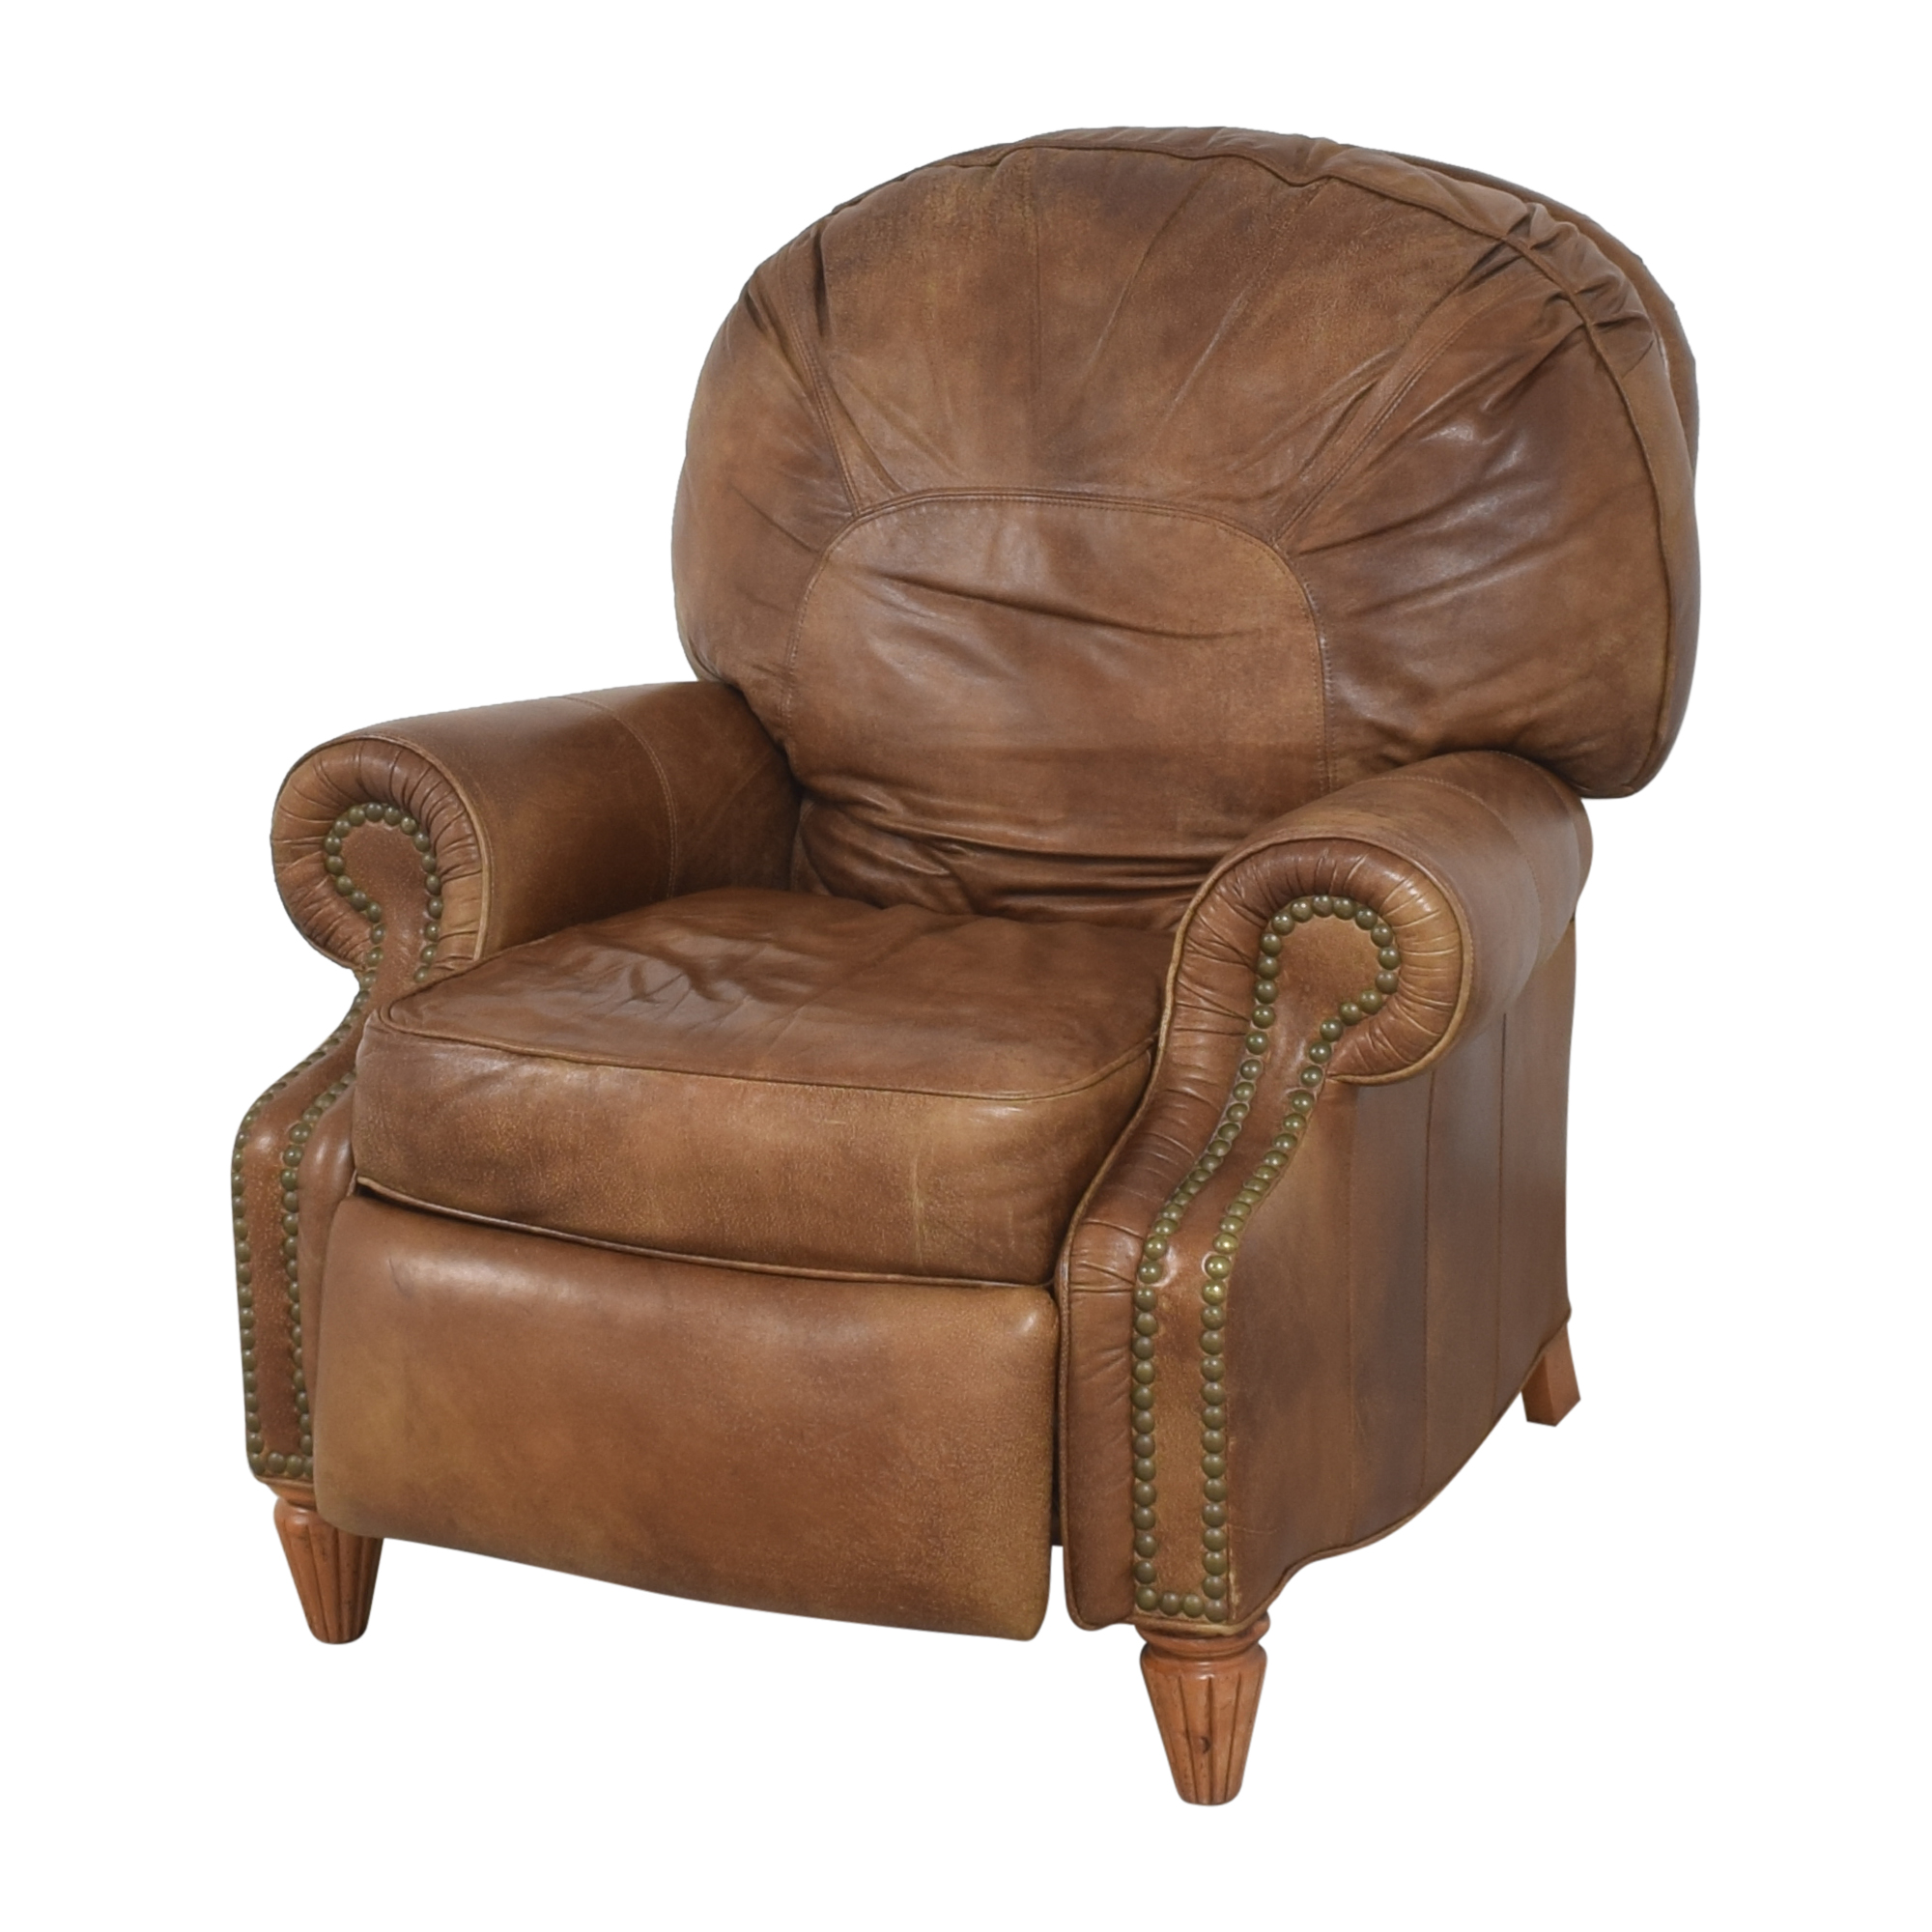 Thomasville Leather Morgan Recliner sale